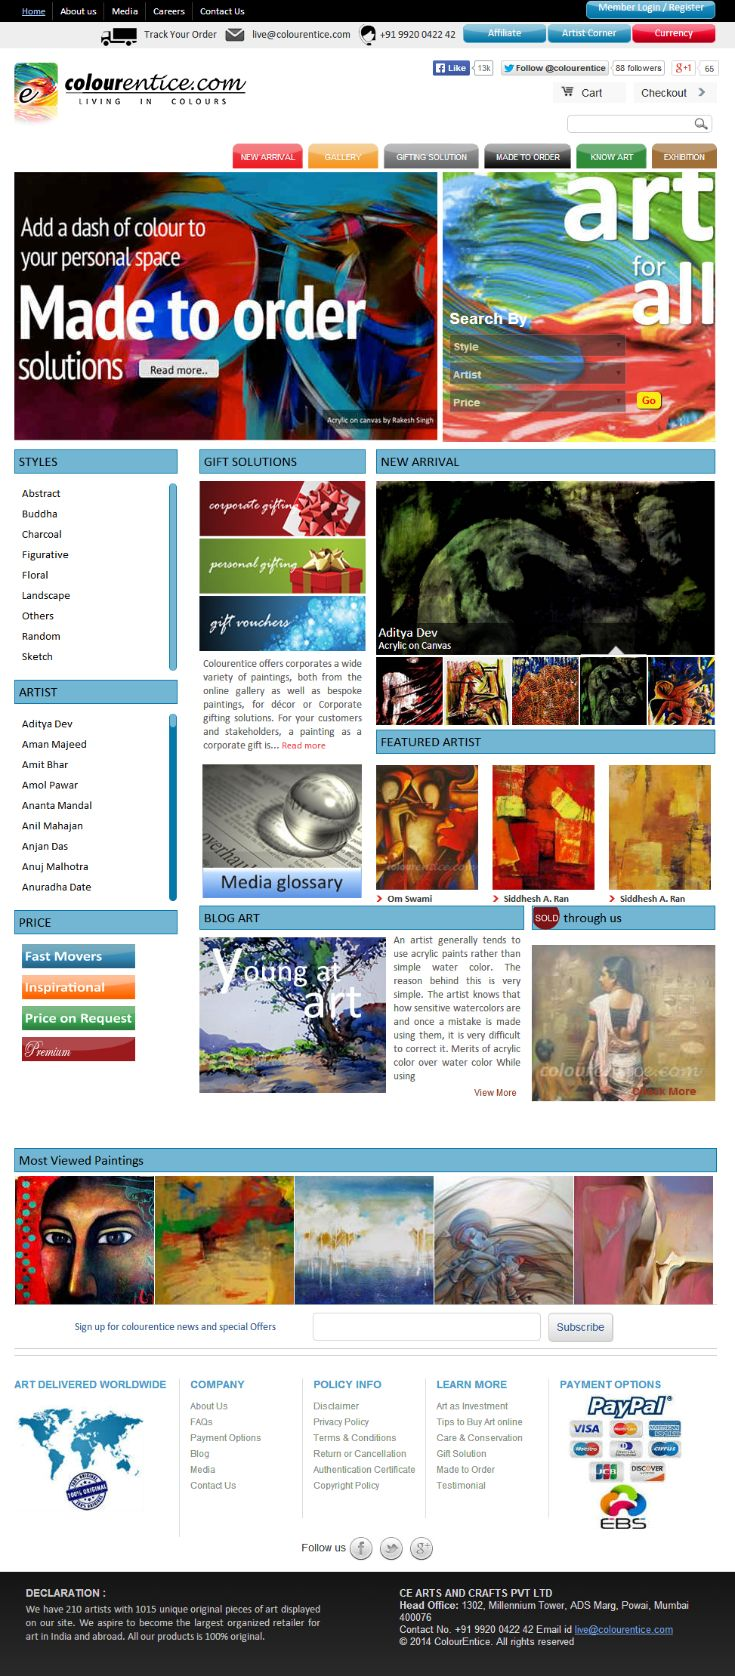 Colourentice is an E-Commerce portal for buying and selling paintings of various styles. We  design and develop this website using #Drupal Framework. jQuery, Ajax are extensively used in this project. This project has feature for viewing products in Multi-currency with PayPal and EBS payment gateways are integrated for carrying out online transactions.